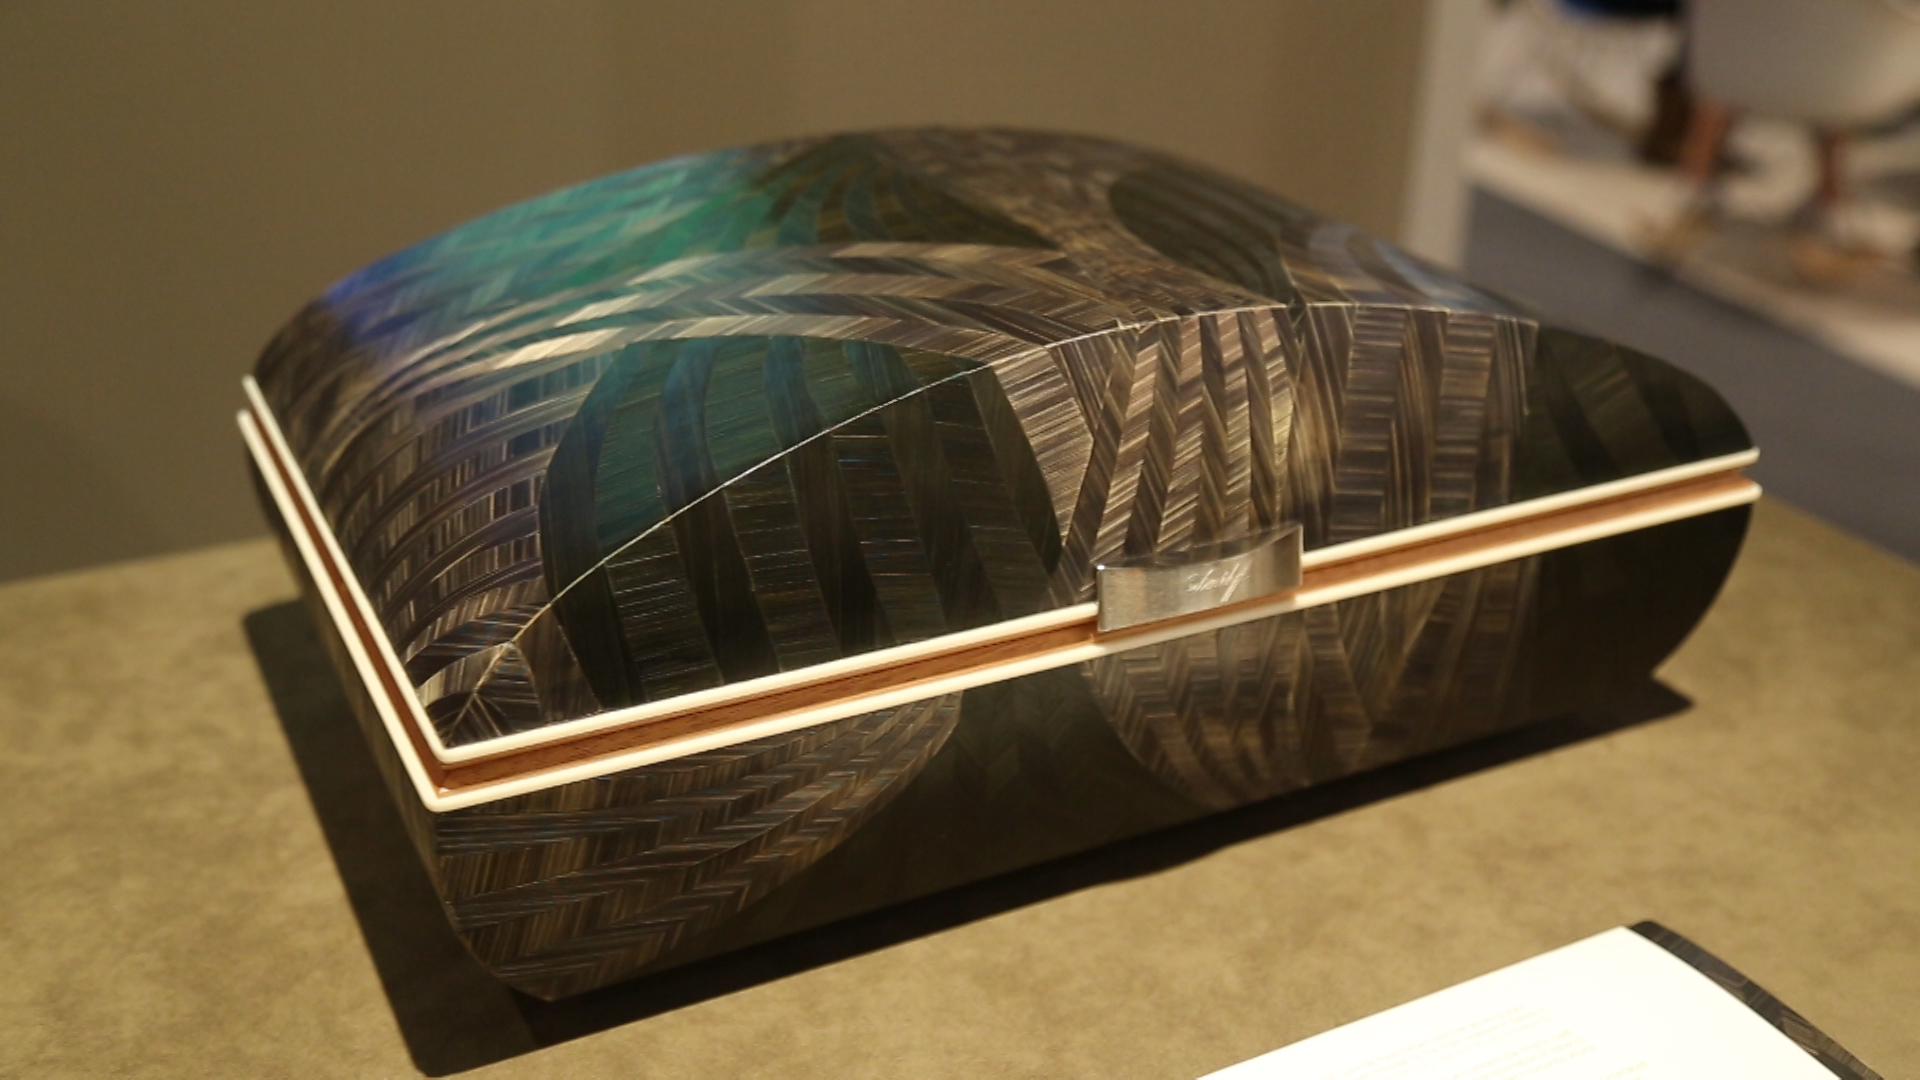 Video: Davidoff's Cave de Paille humidors at Art Basel Miami Beach